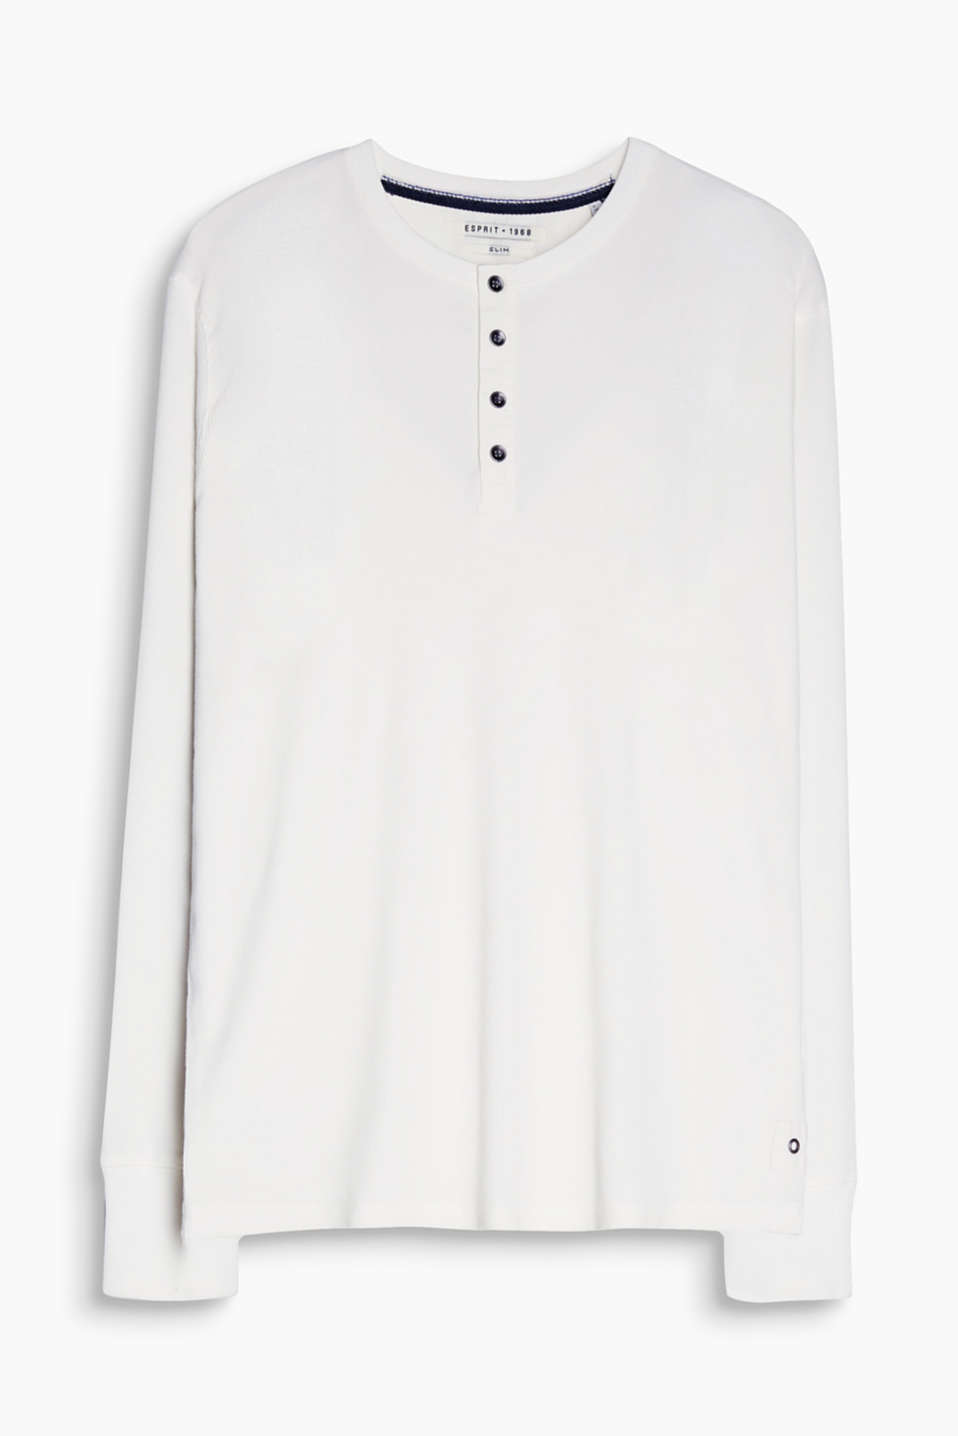 Long sleeve top in a Henley style made from 100% cotton with a striped texture and cuffs at the sleeve ends